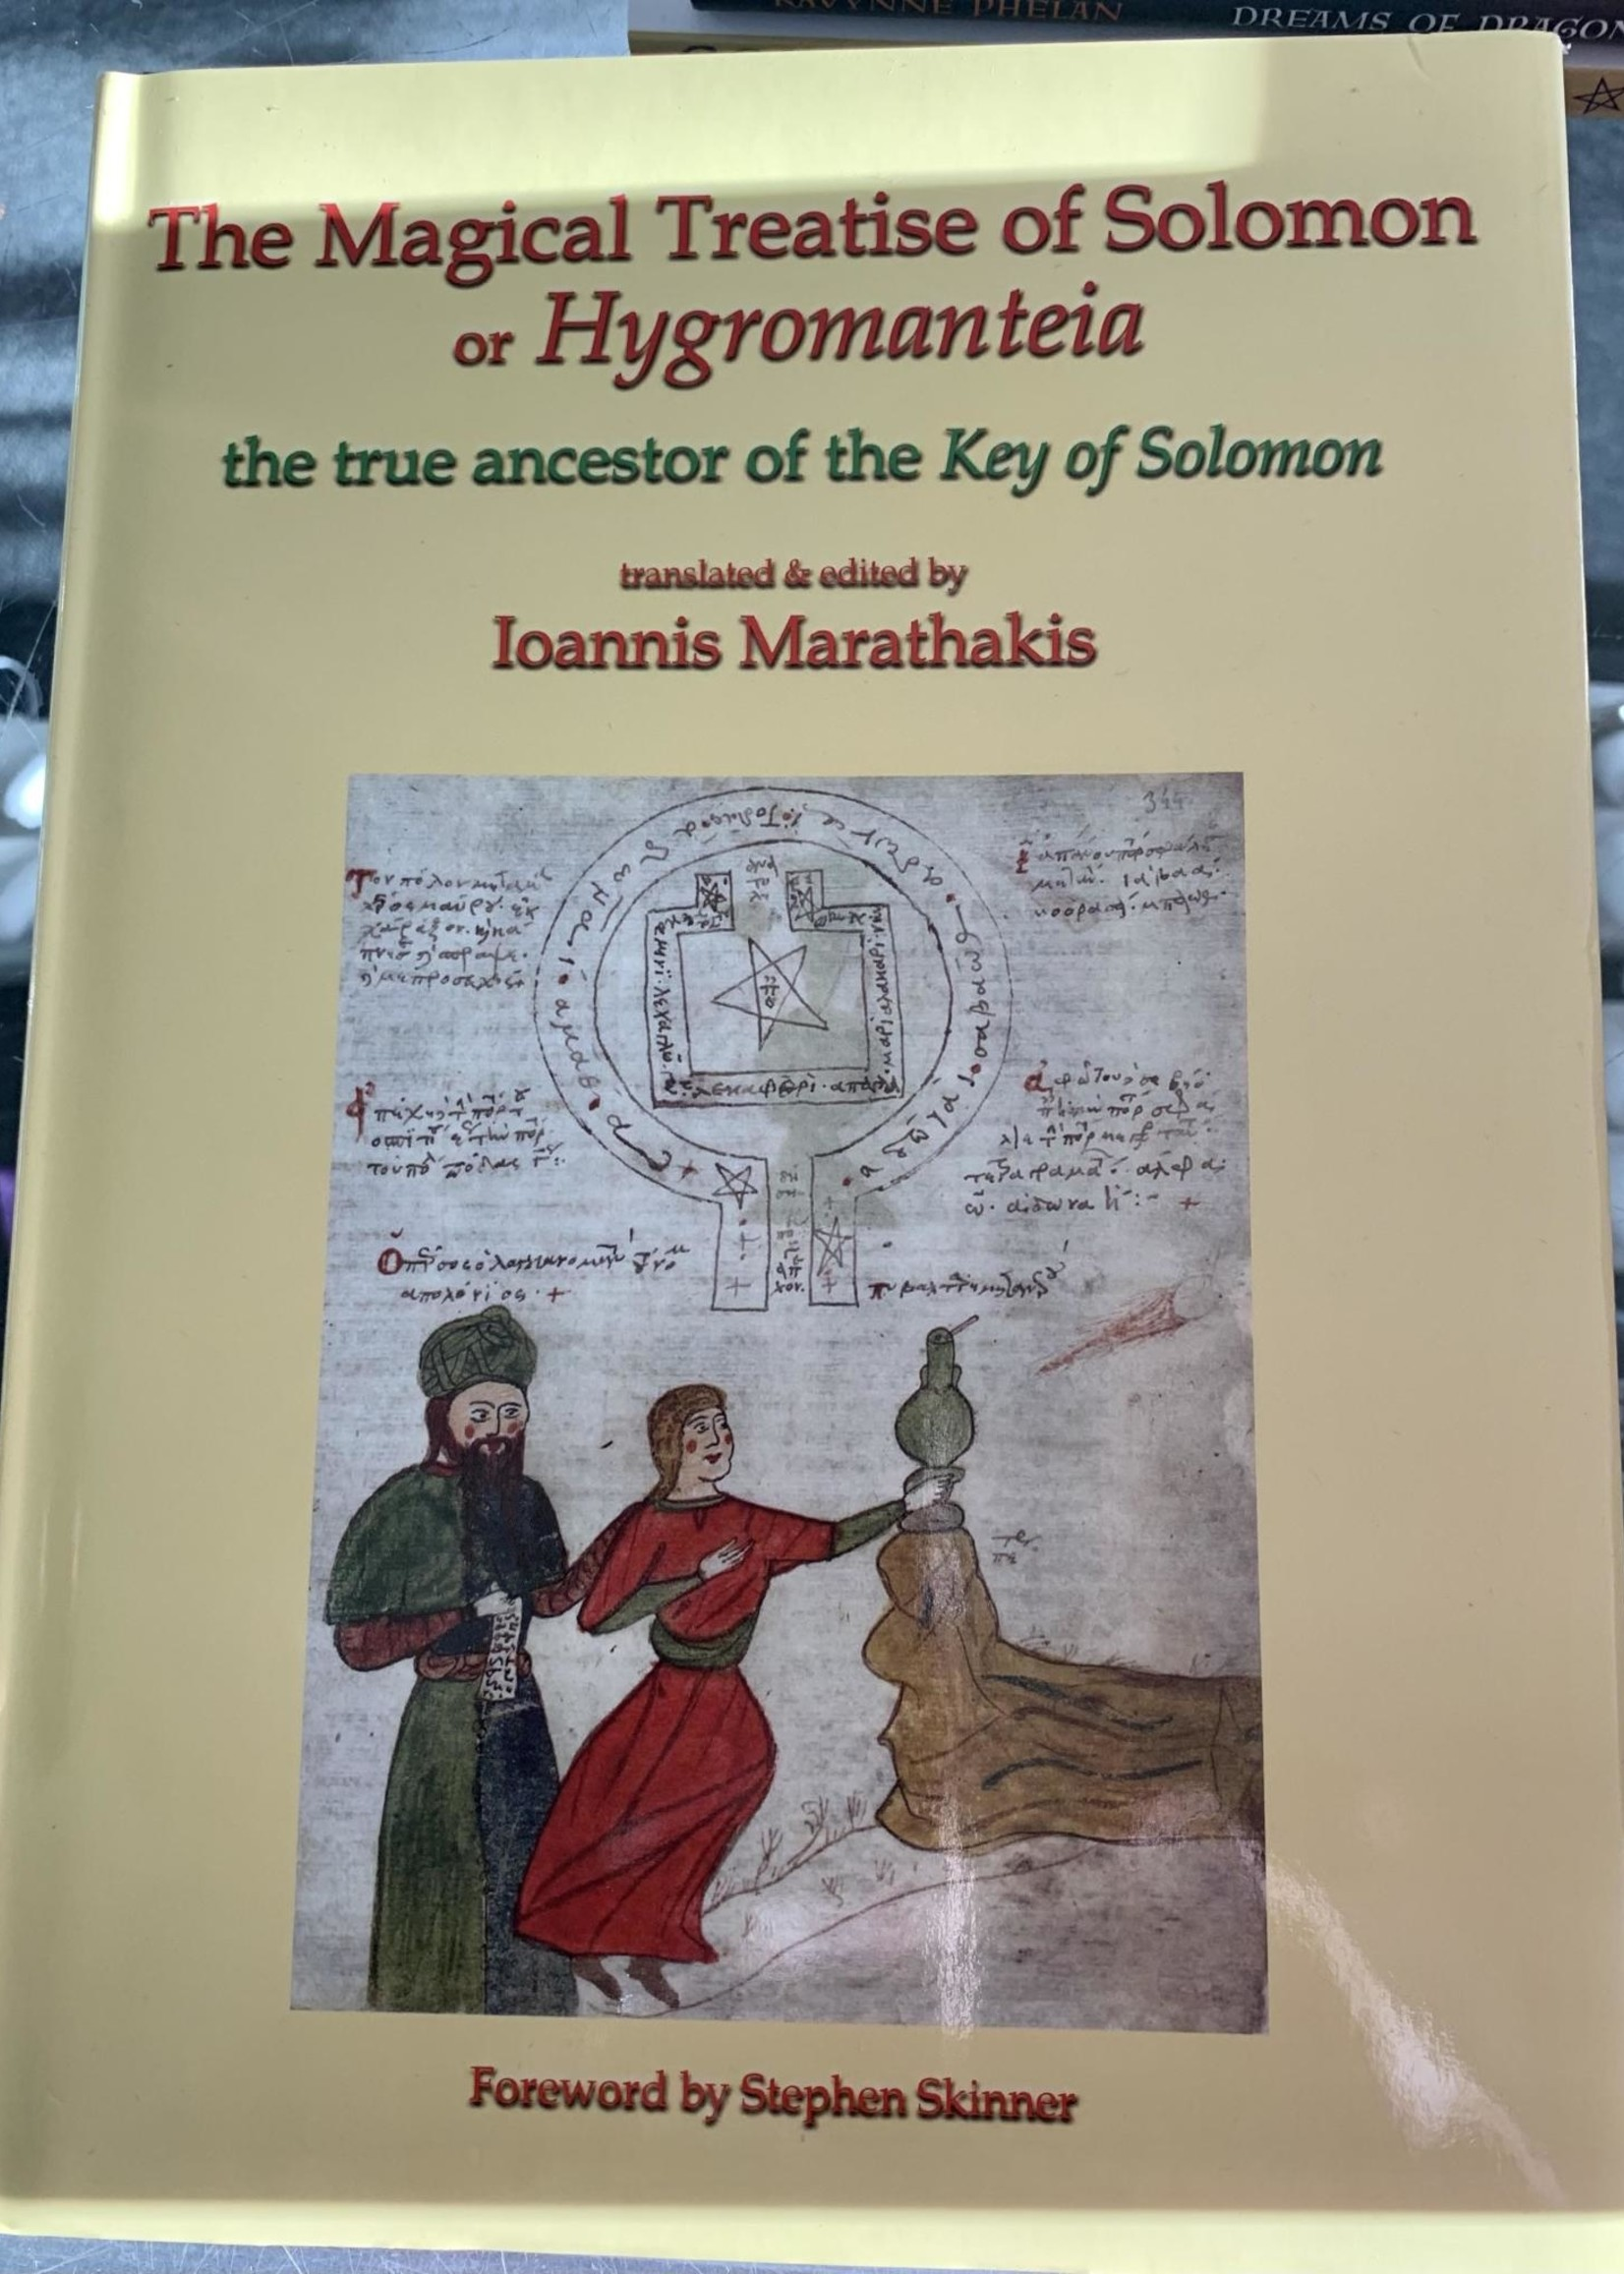 The Magical Treatise of Solomon, or Hygromanteia - BY IOANNIS MARATHAKIS